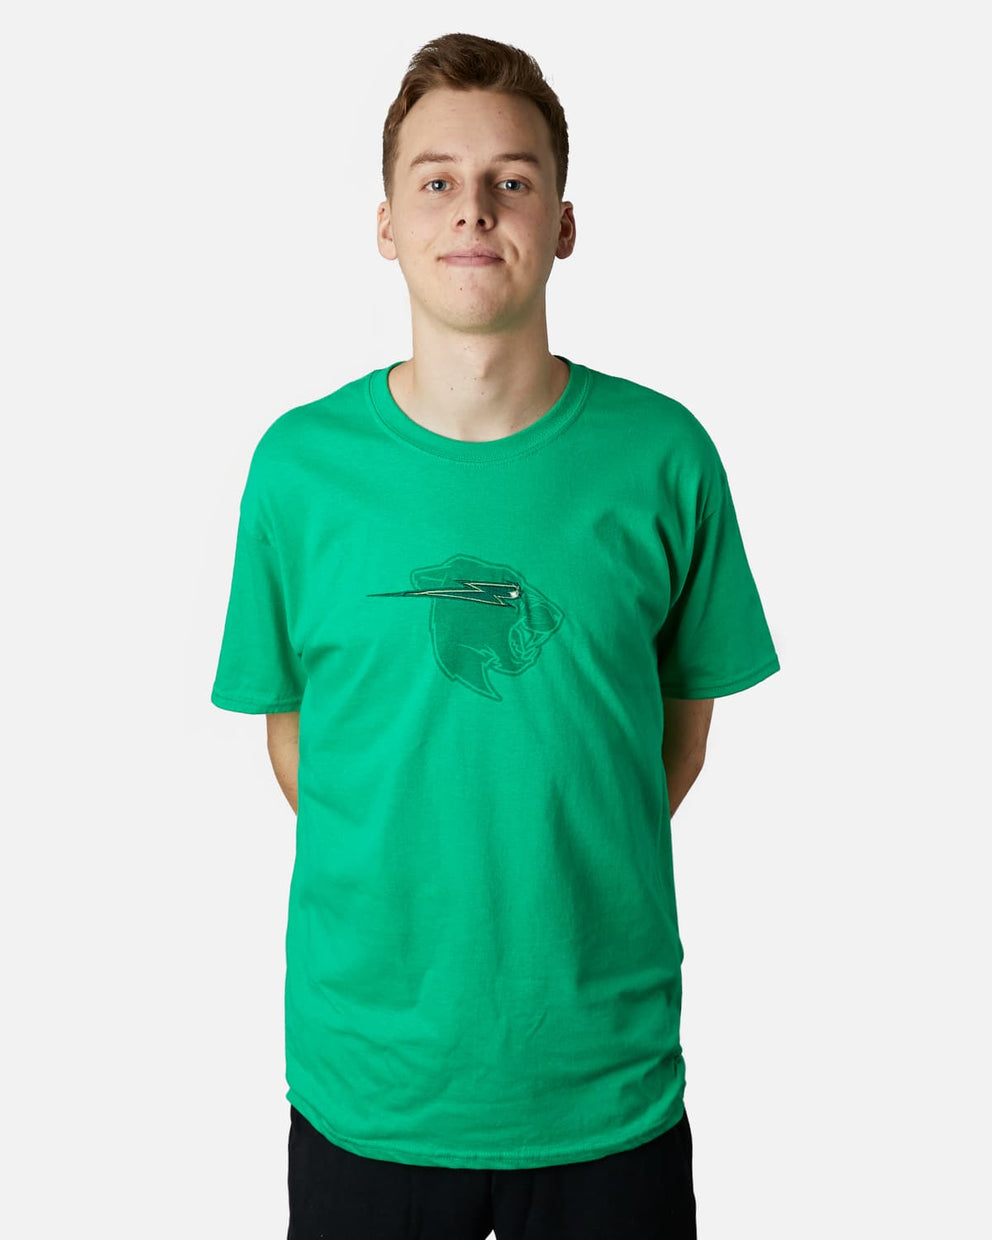 'Beast Head' Embroidery Tee - Green